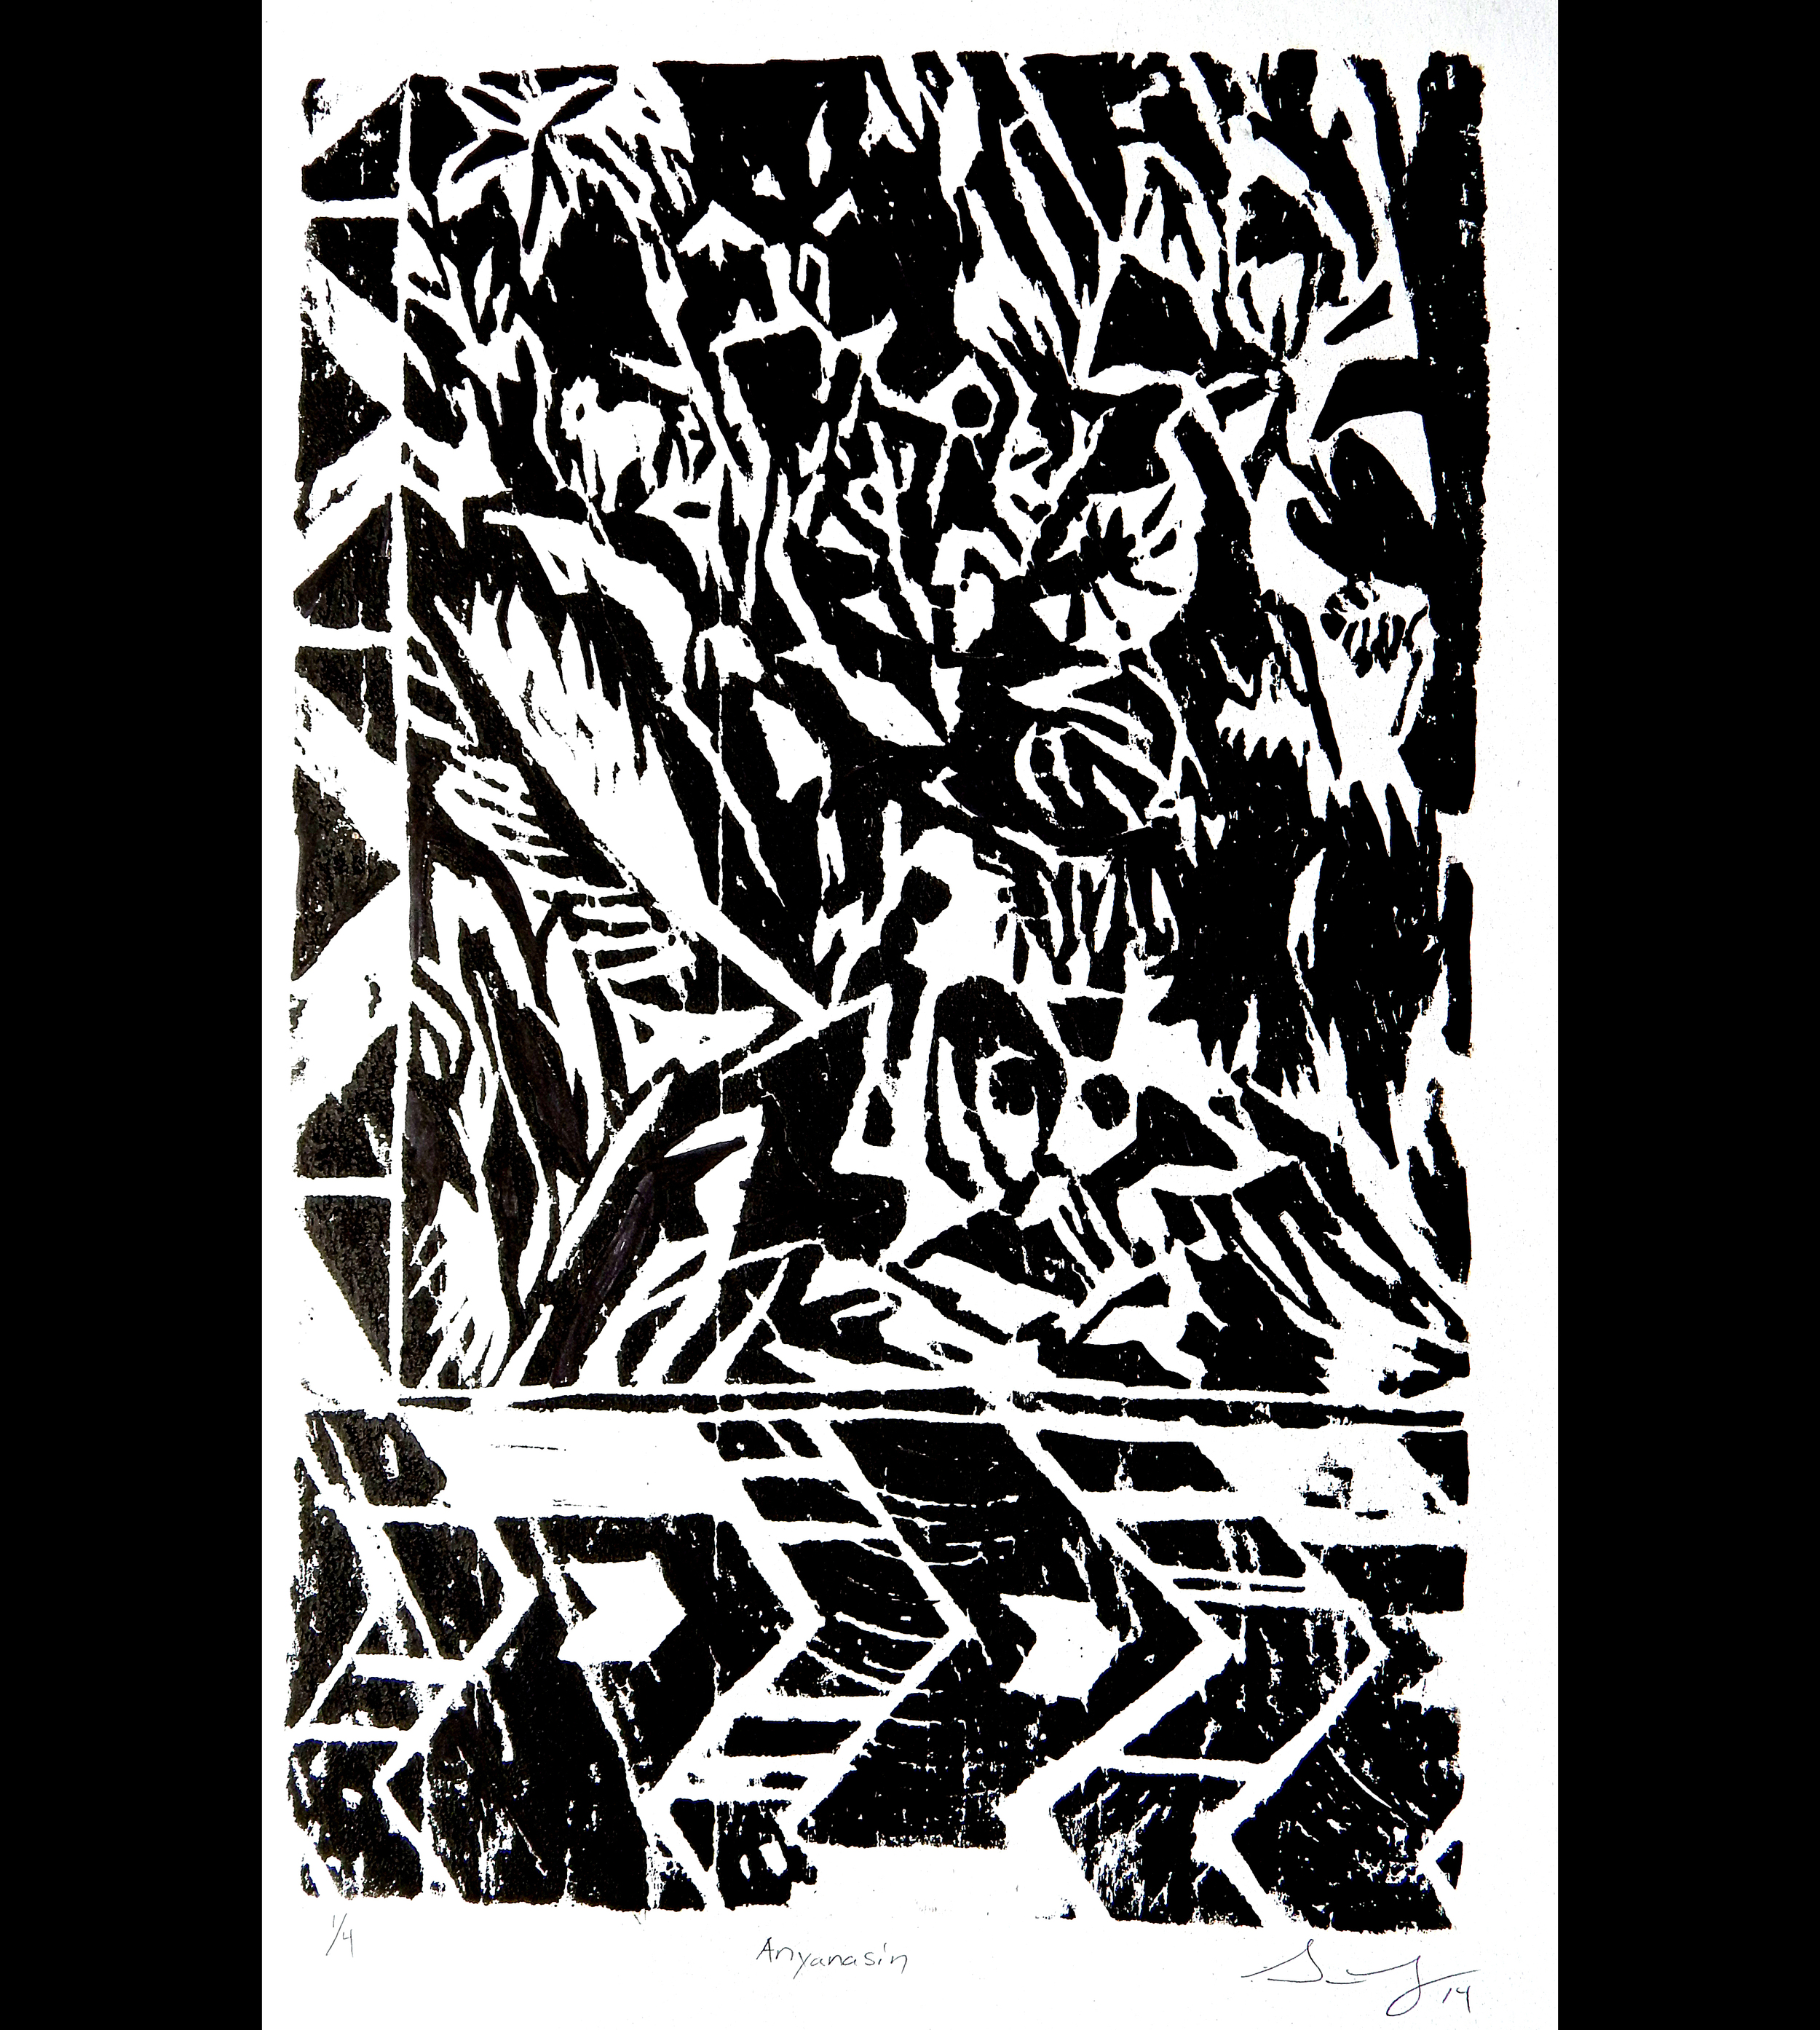 South (scene 1 of dyptic), 2014, woodcut